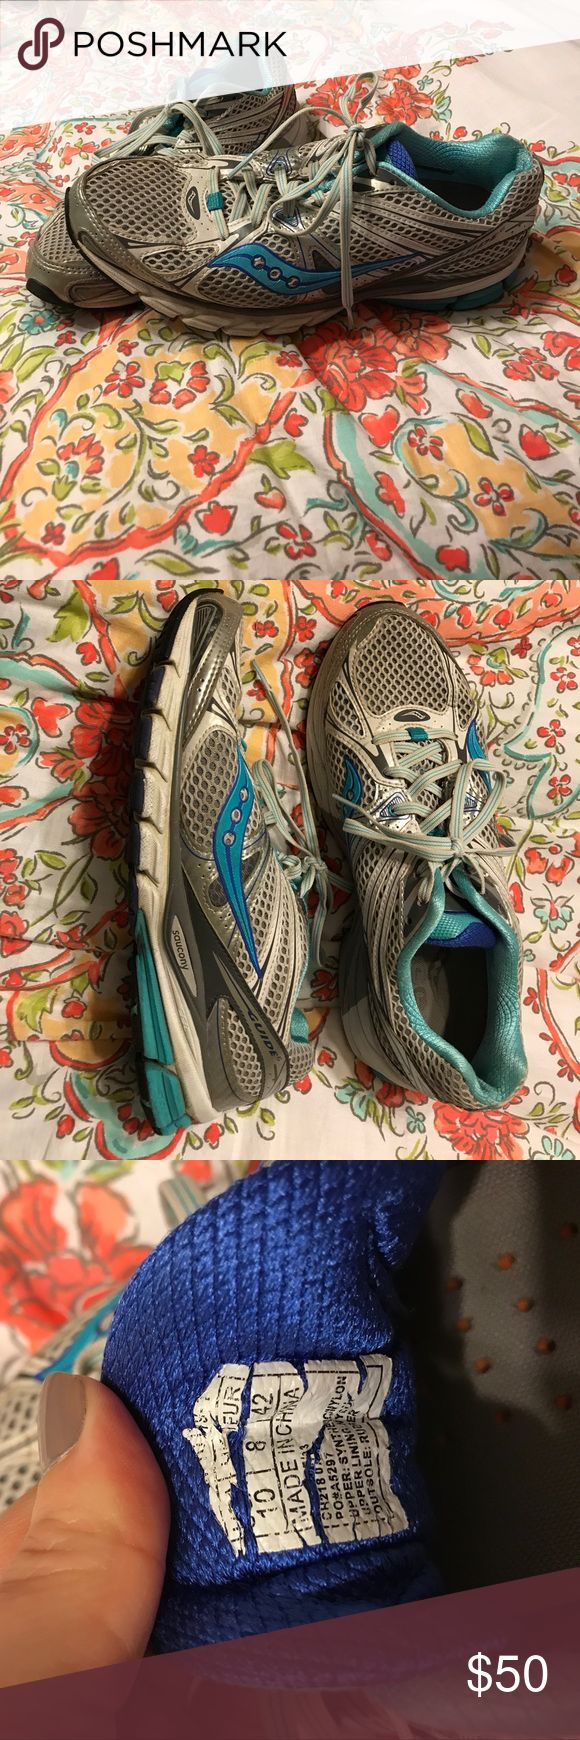 Womens Saucony size 10 tennis shoes Women's Saucony tennis shoes. Size 10. Used but still have lots of wear left in these. Bought these at a speciality athletic shoe store Saucony Shoes Athletic Shoes